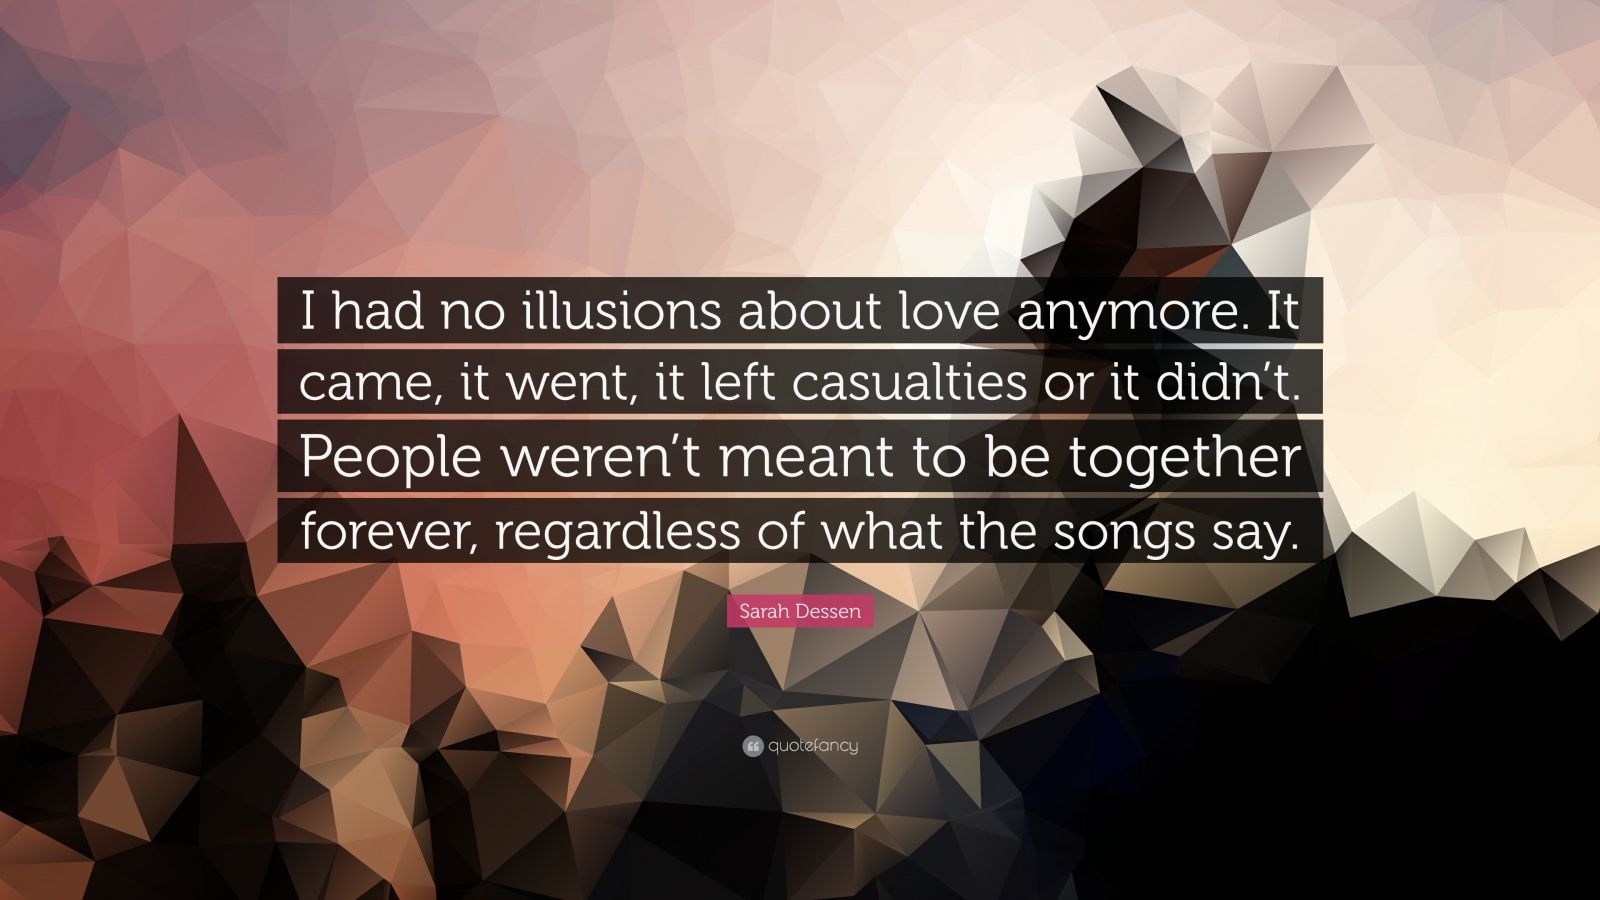 """Sarah Dessen Quote: """"I had no illusions about love anymore. It came, it went, it left casualties or it didn't. People weren't meant to be together forever, regardless of what the songs say."""""""